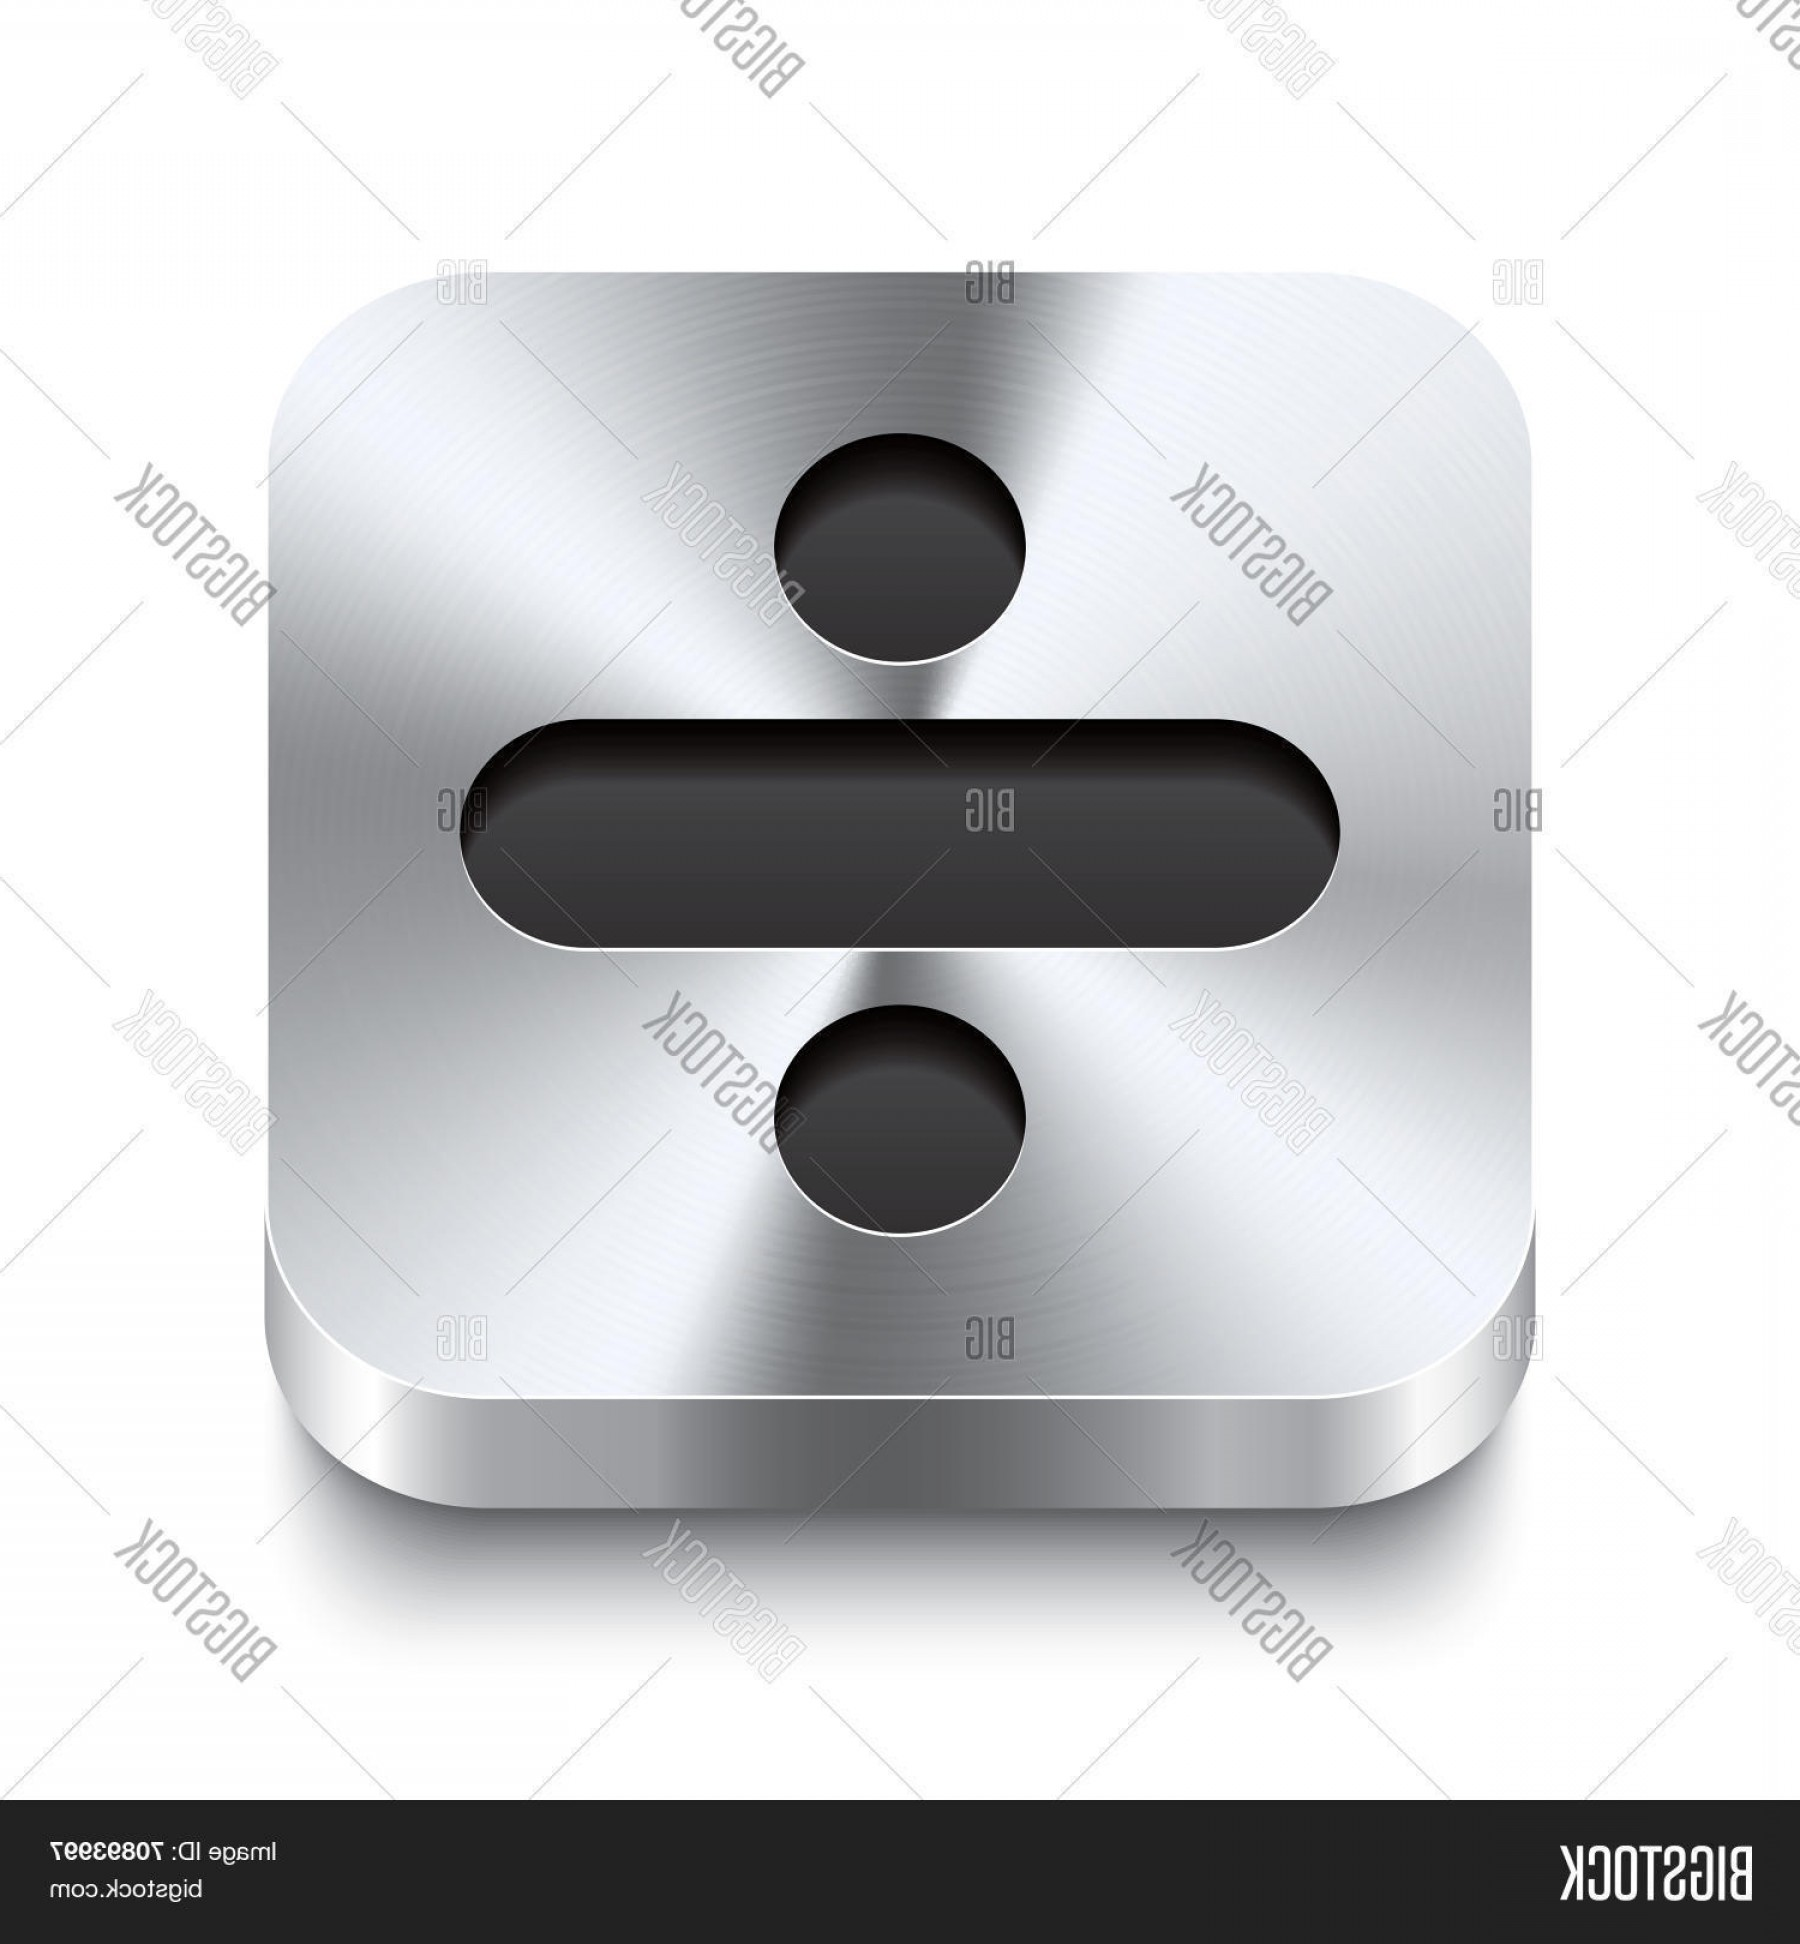 Metal Button Vector: Stock Vector Square Metal Button Perspektive Minus Icon